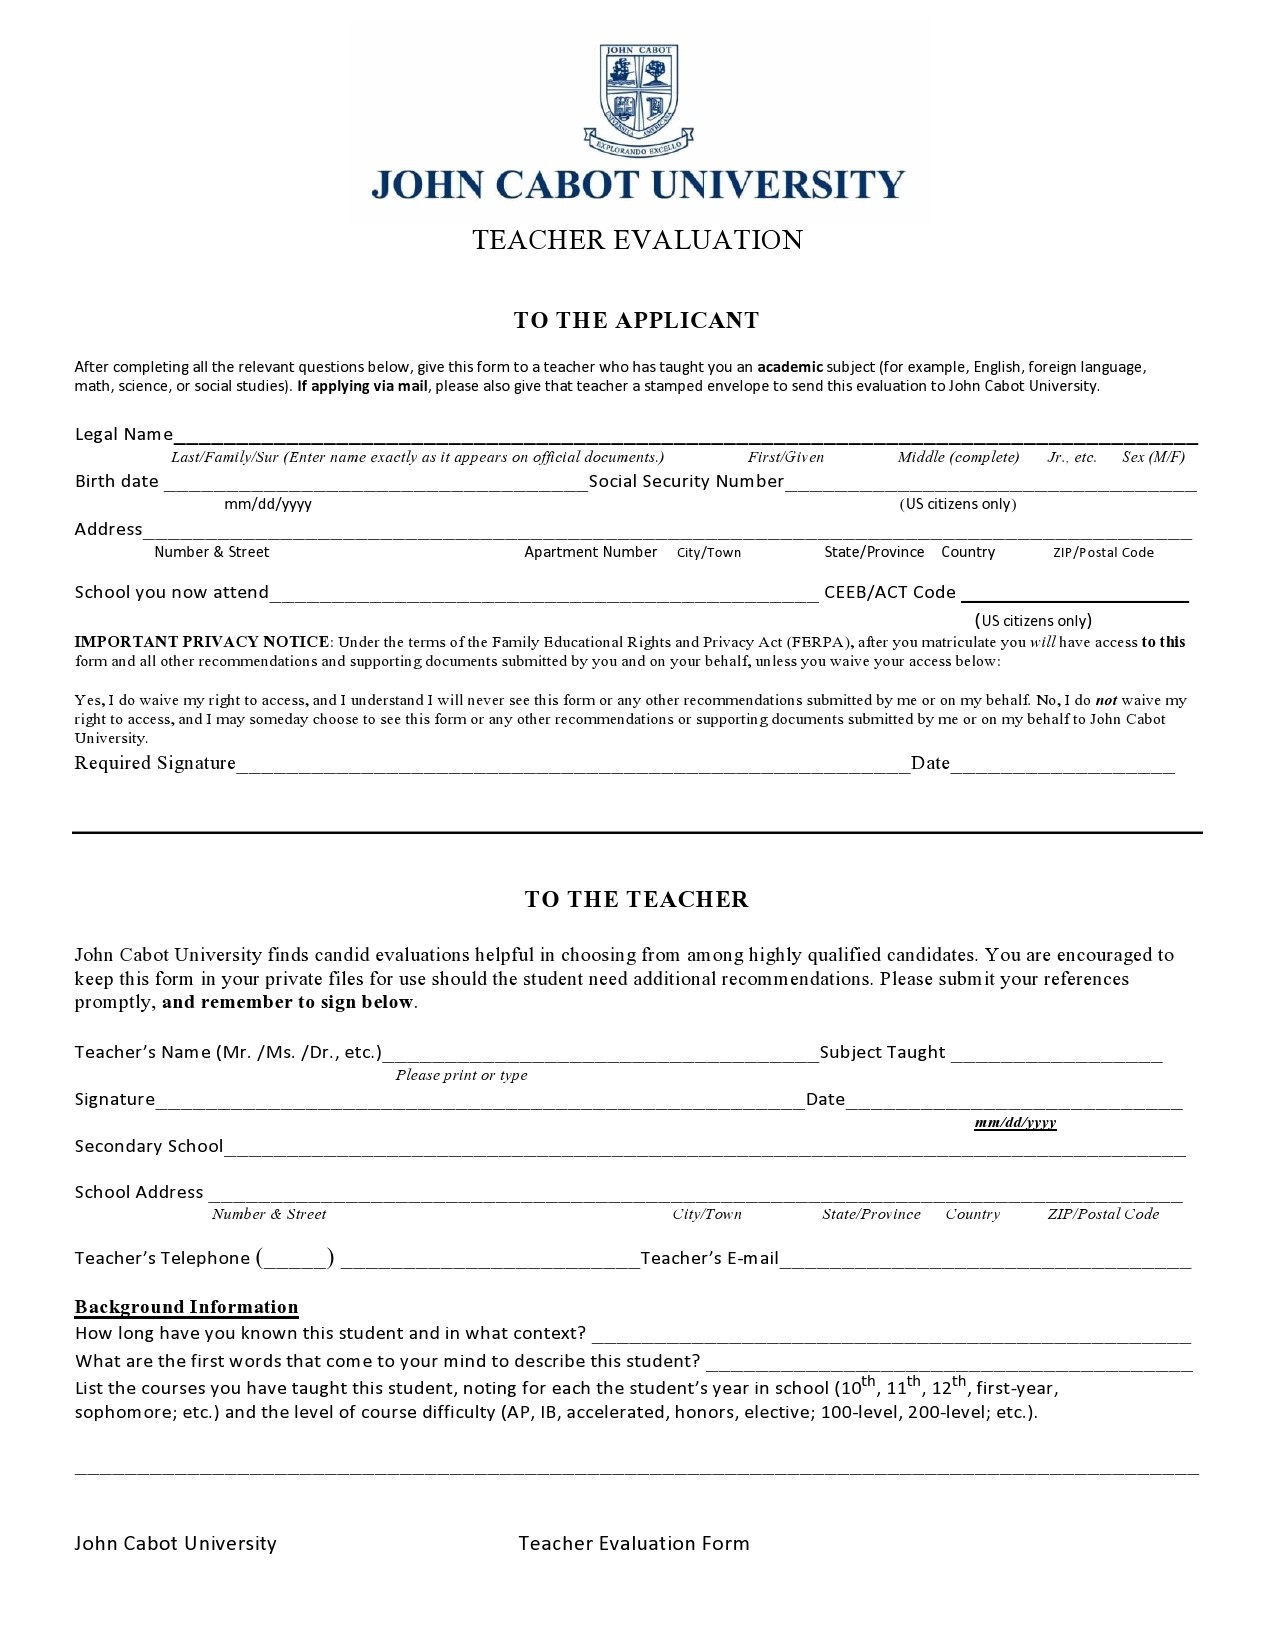 Free teacher evaluation form 06